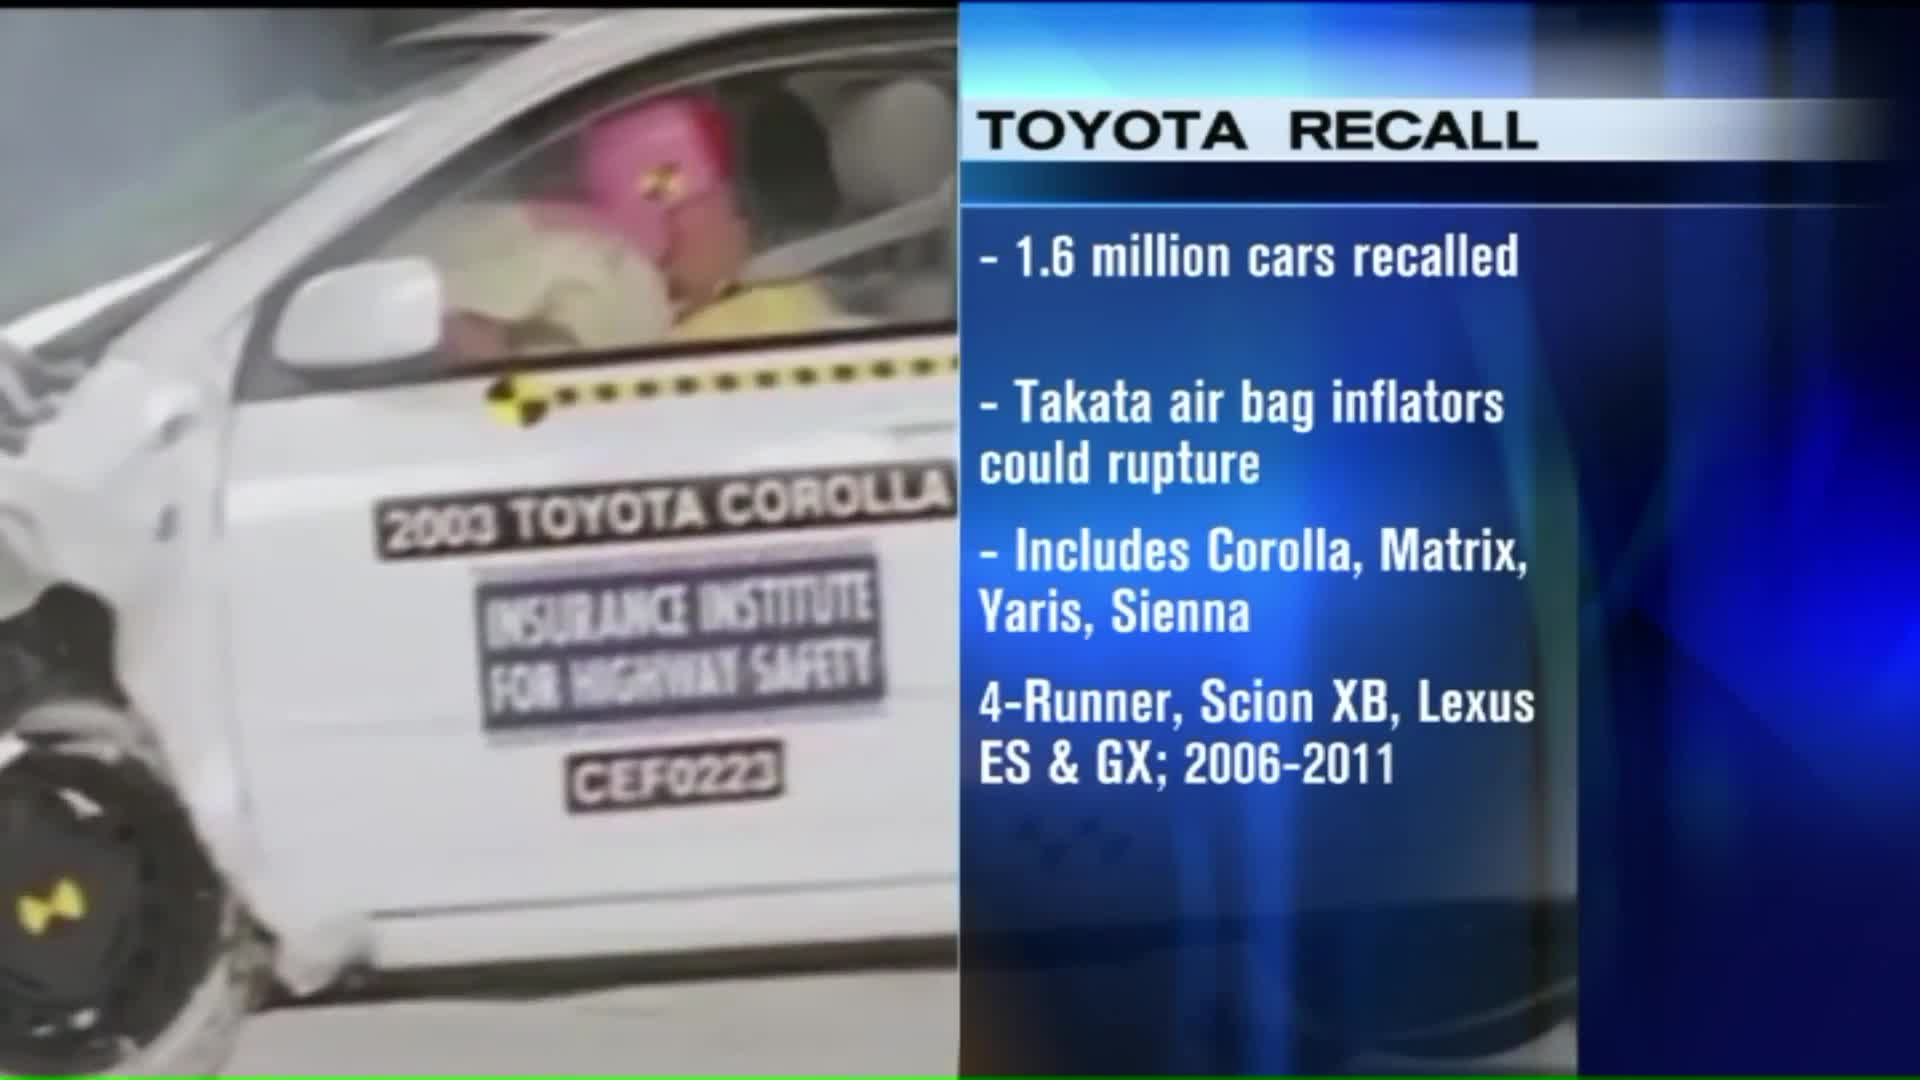 Toyota Adding 1.6 Million Vehicles to Takata Air Bag Recall